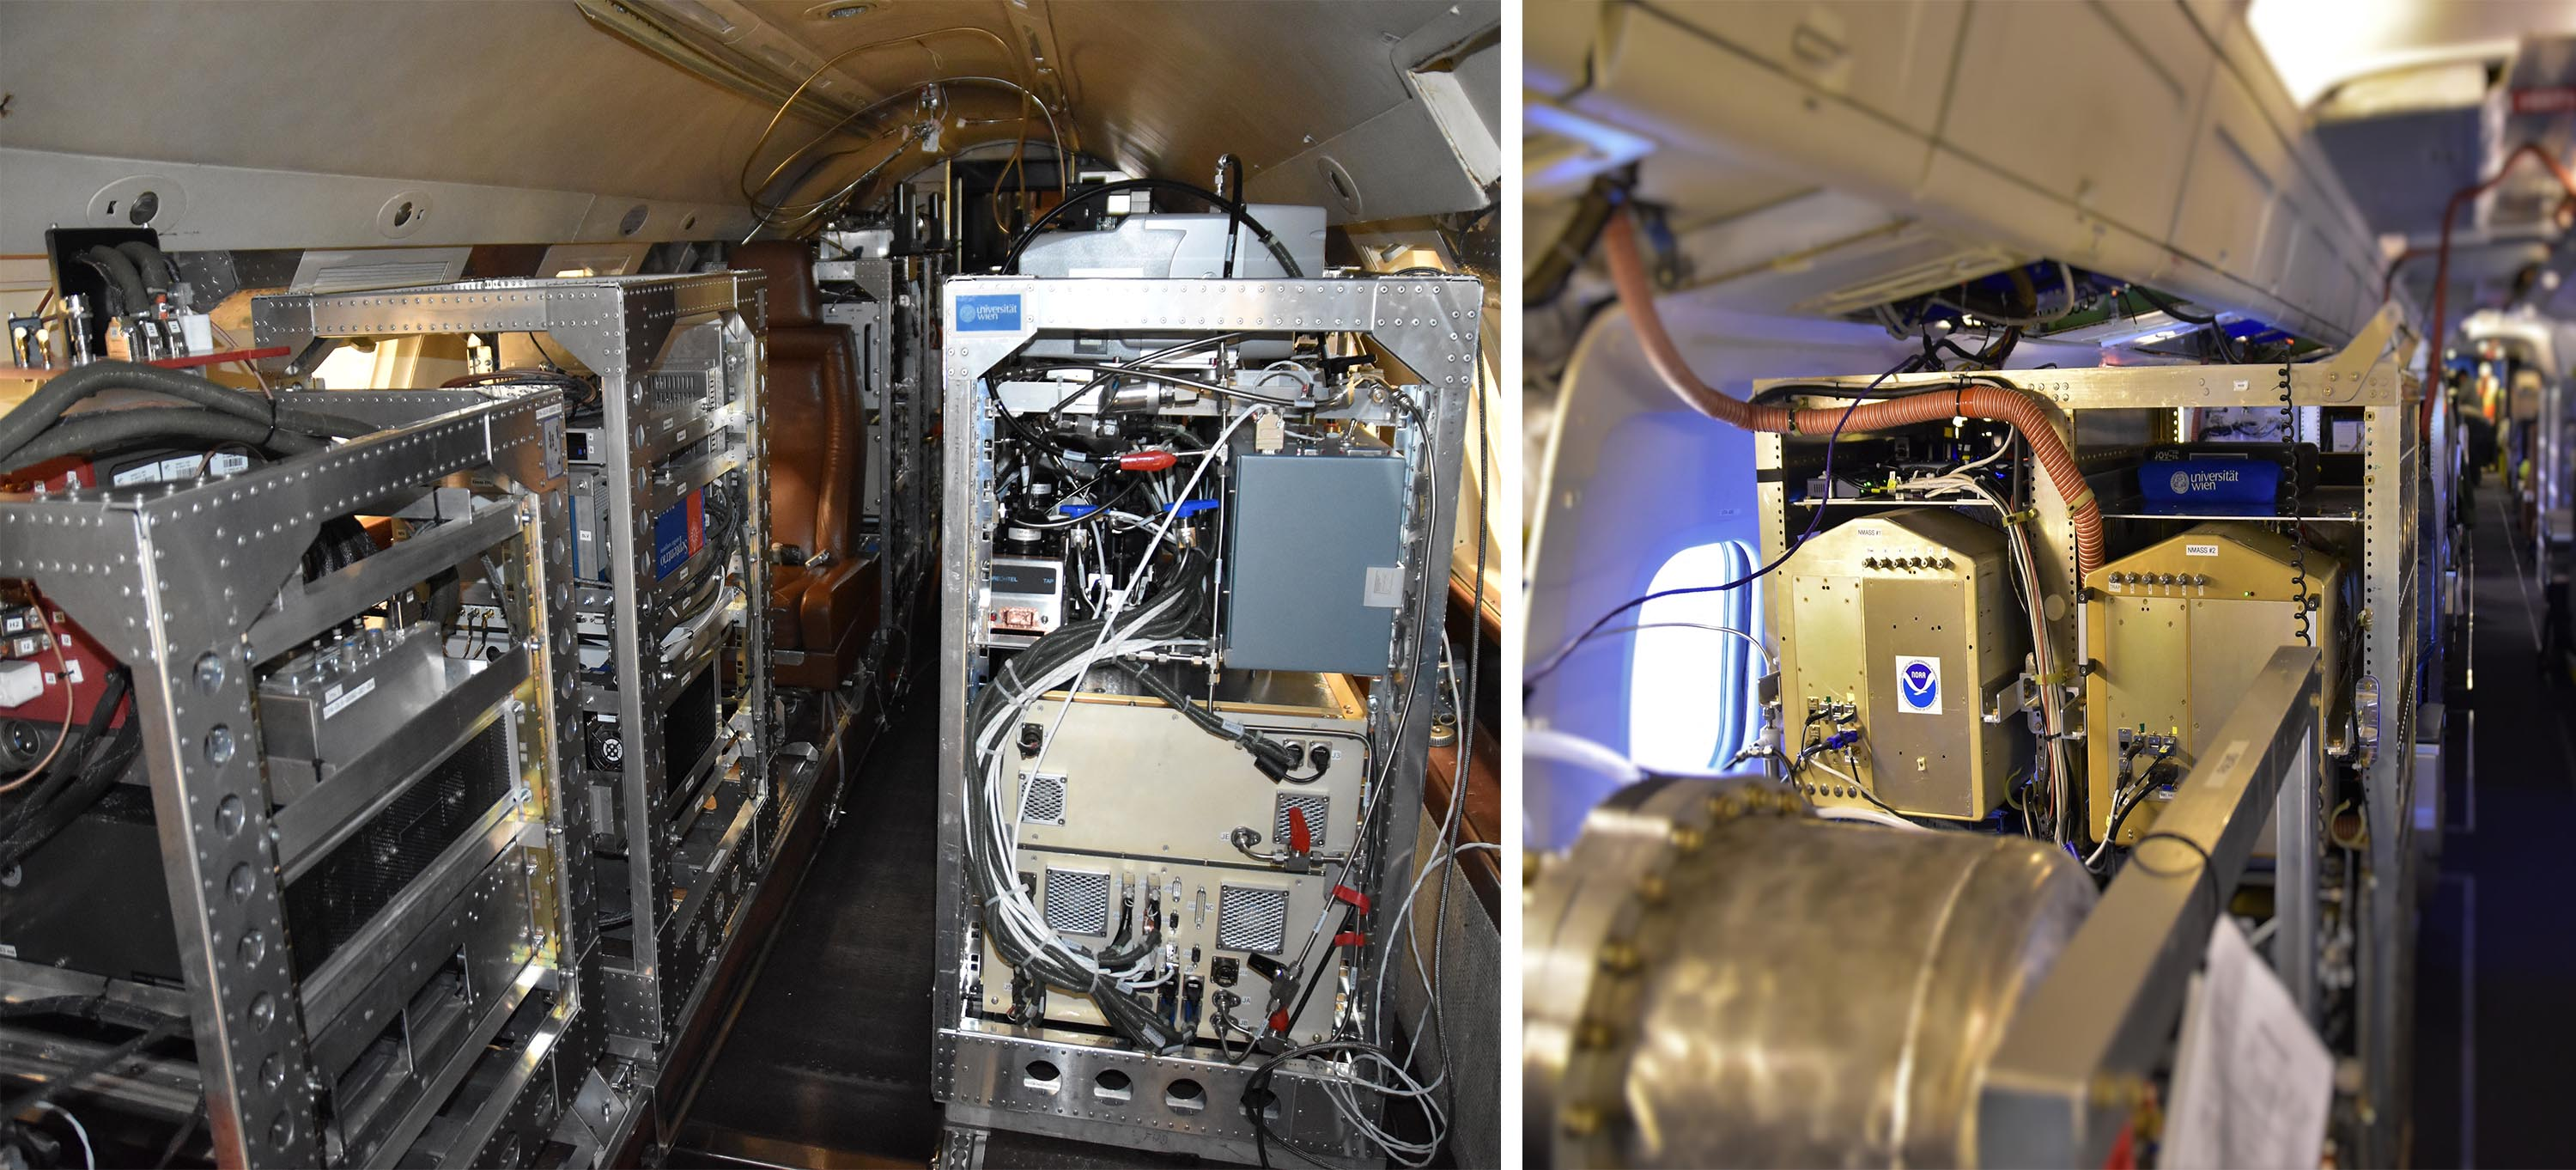 Specialised instruments aboard research planes mean scientists can collect air samples at different altitudes for analysis. Image credit - Bernadett Weinzierl